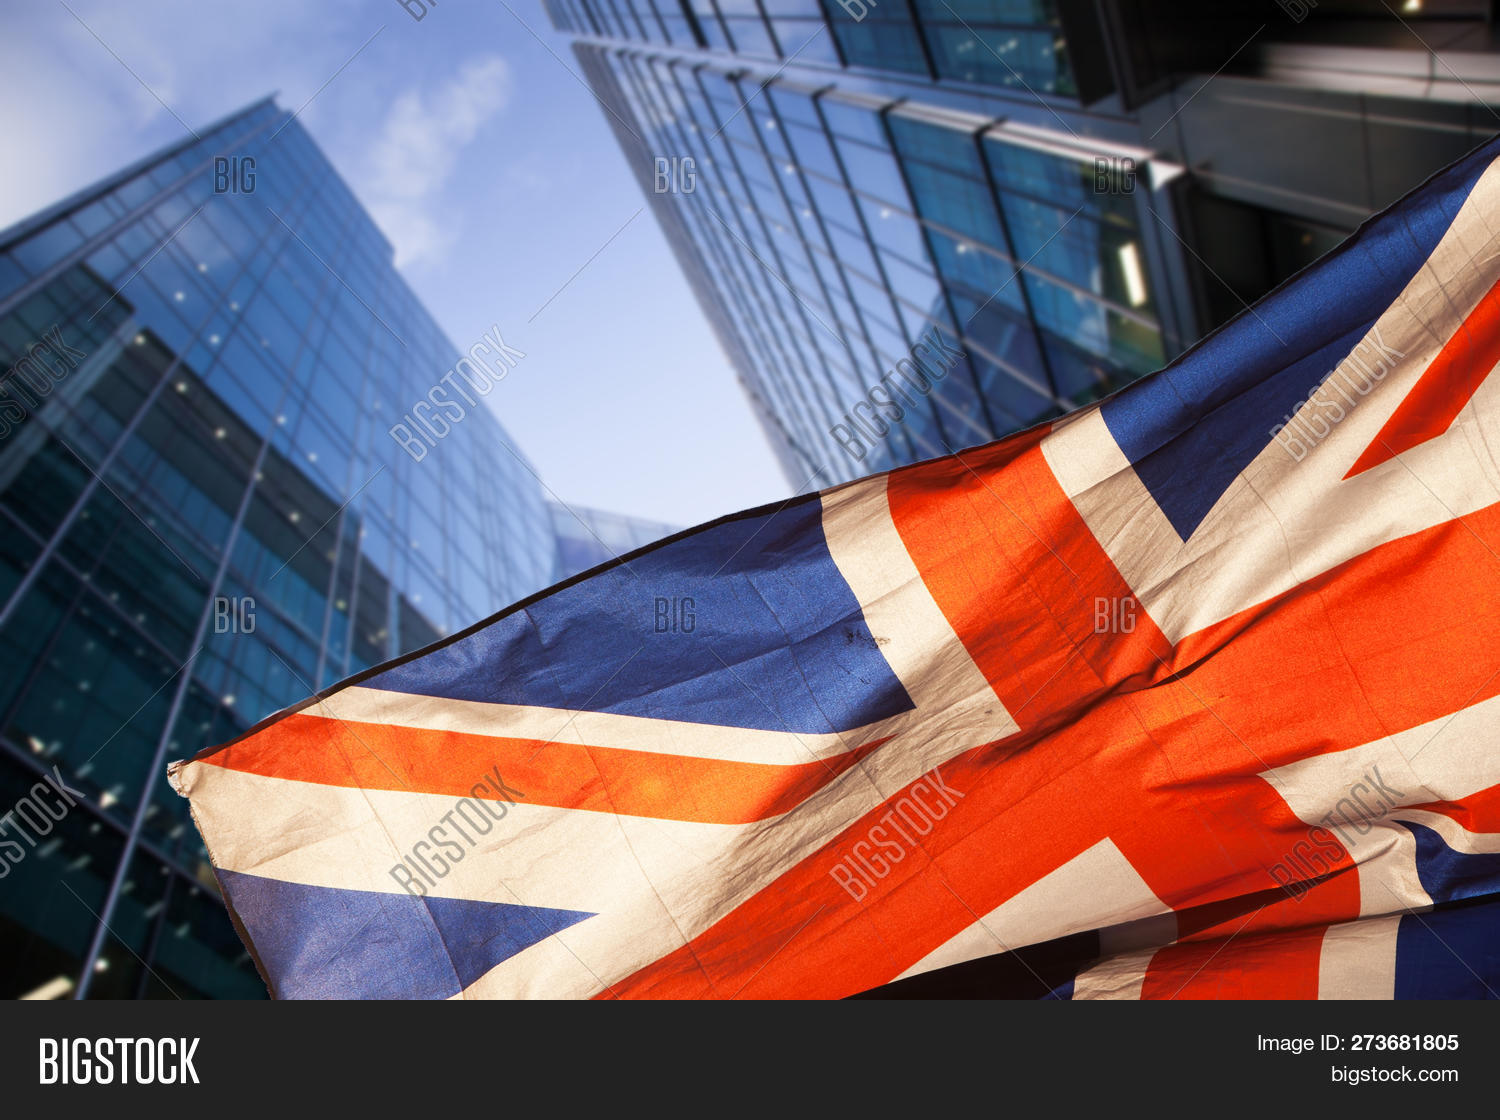 brexit concept - UK economy after Brexit deal - double exposure of flag and Canary Wharf business ce